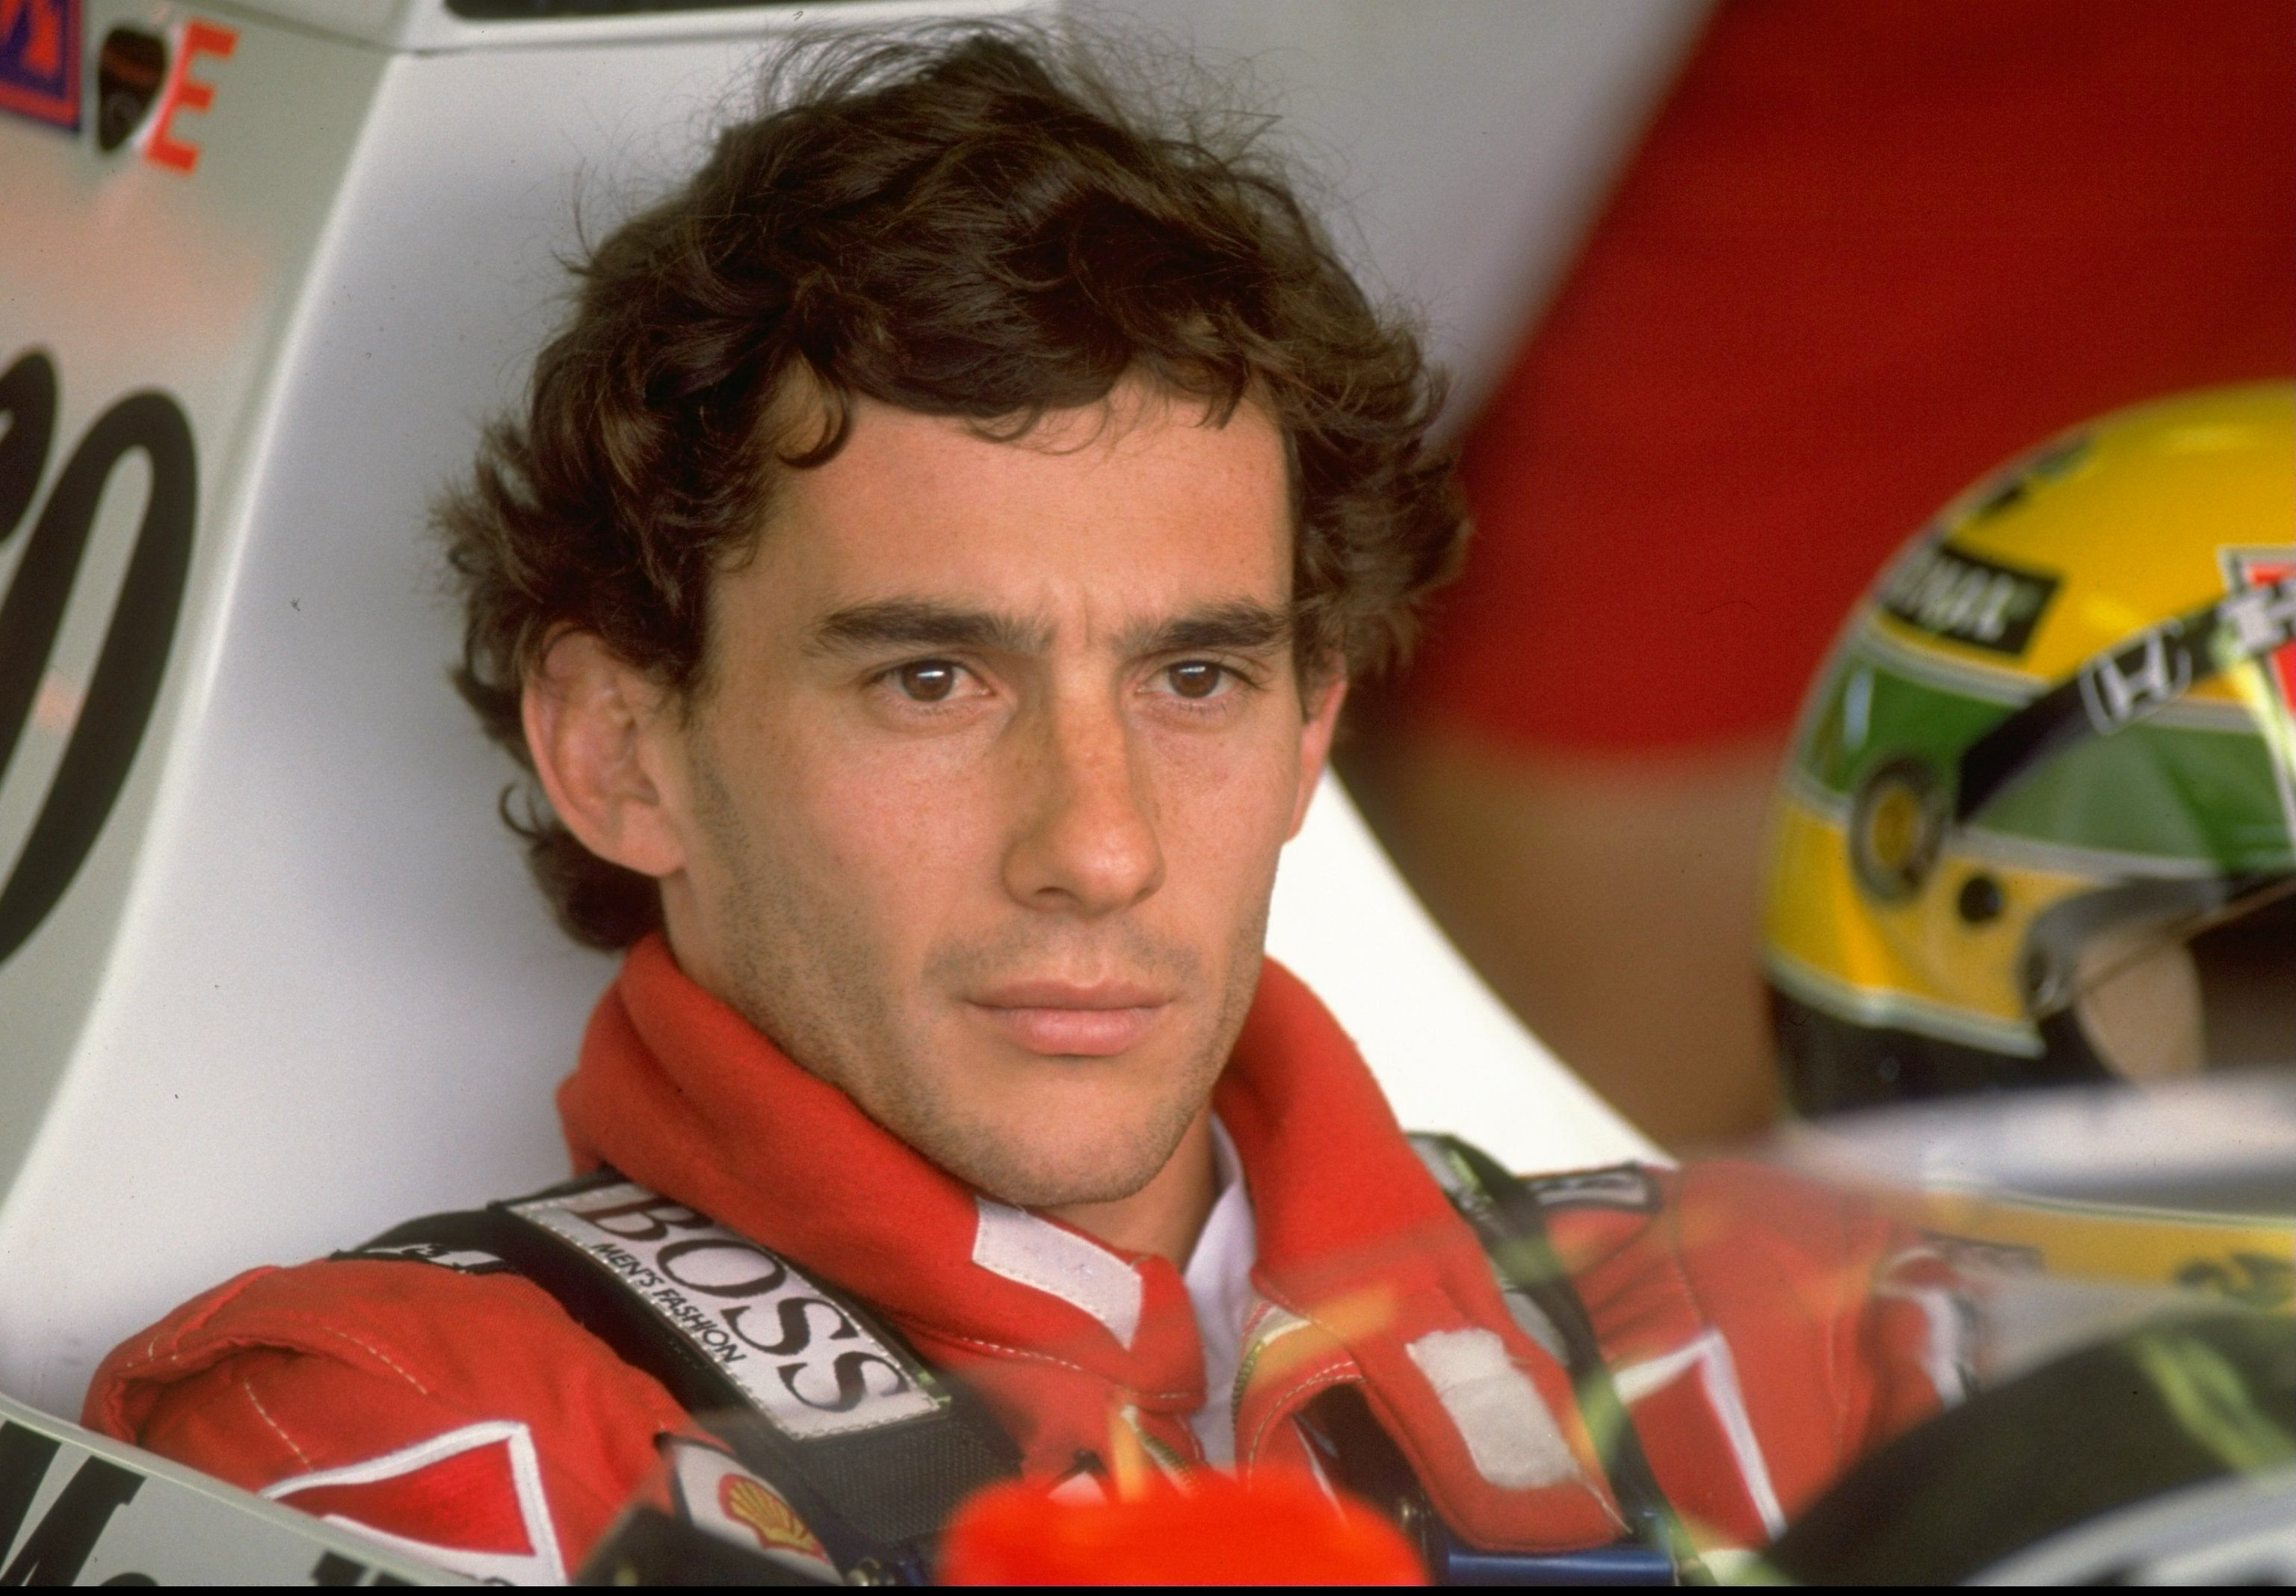 Ayrton Senna Net Worth